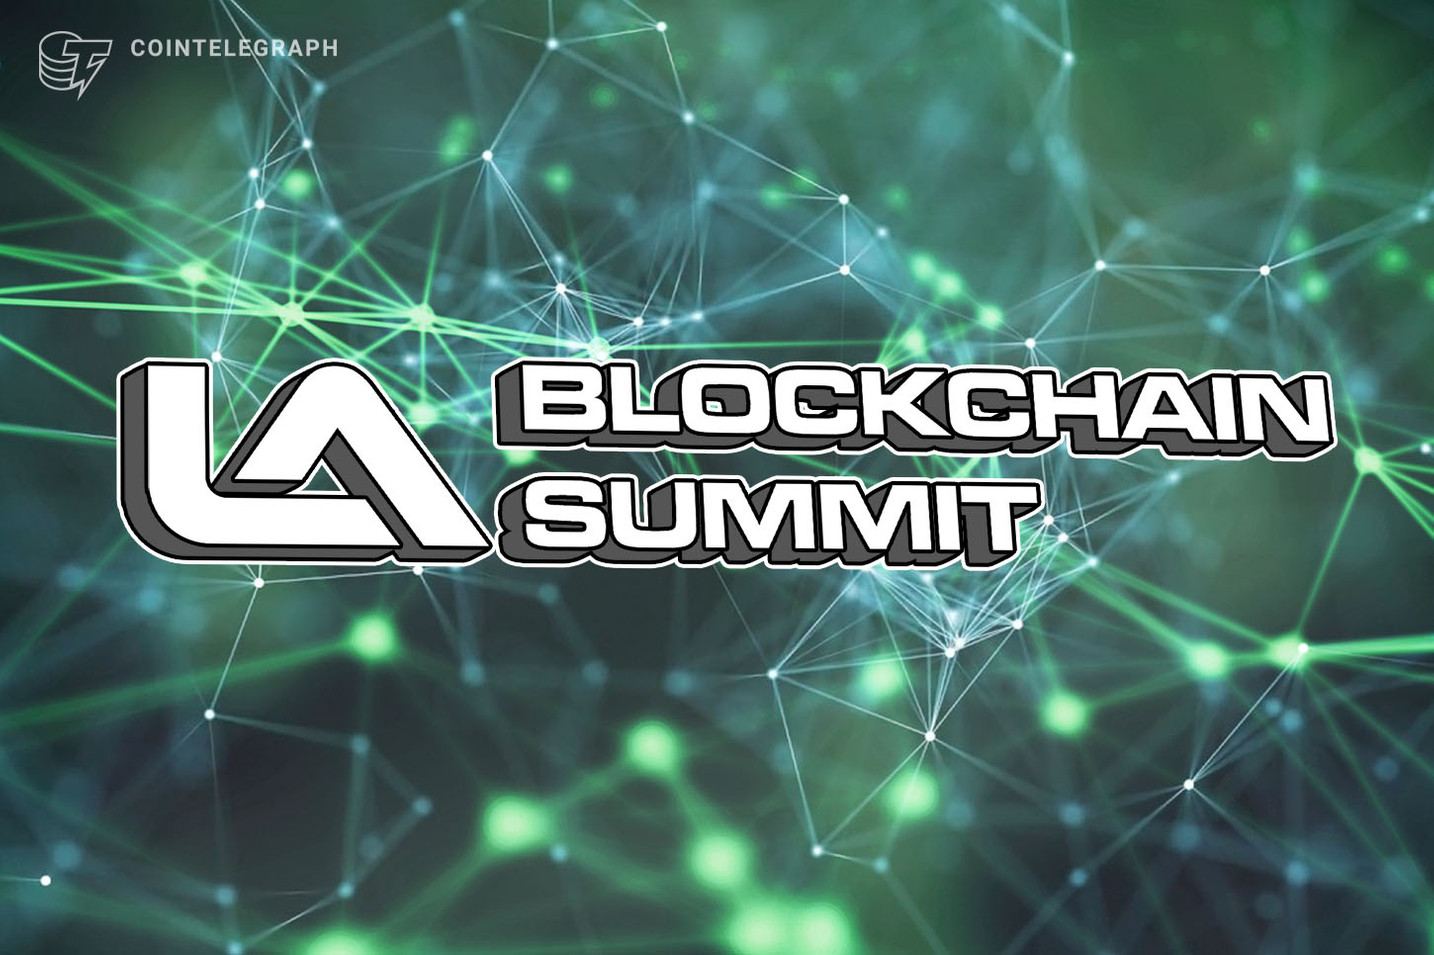 SEC, CFTC, OCC & thousands more flock online to LA Blockchain Summit